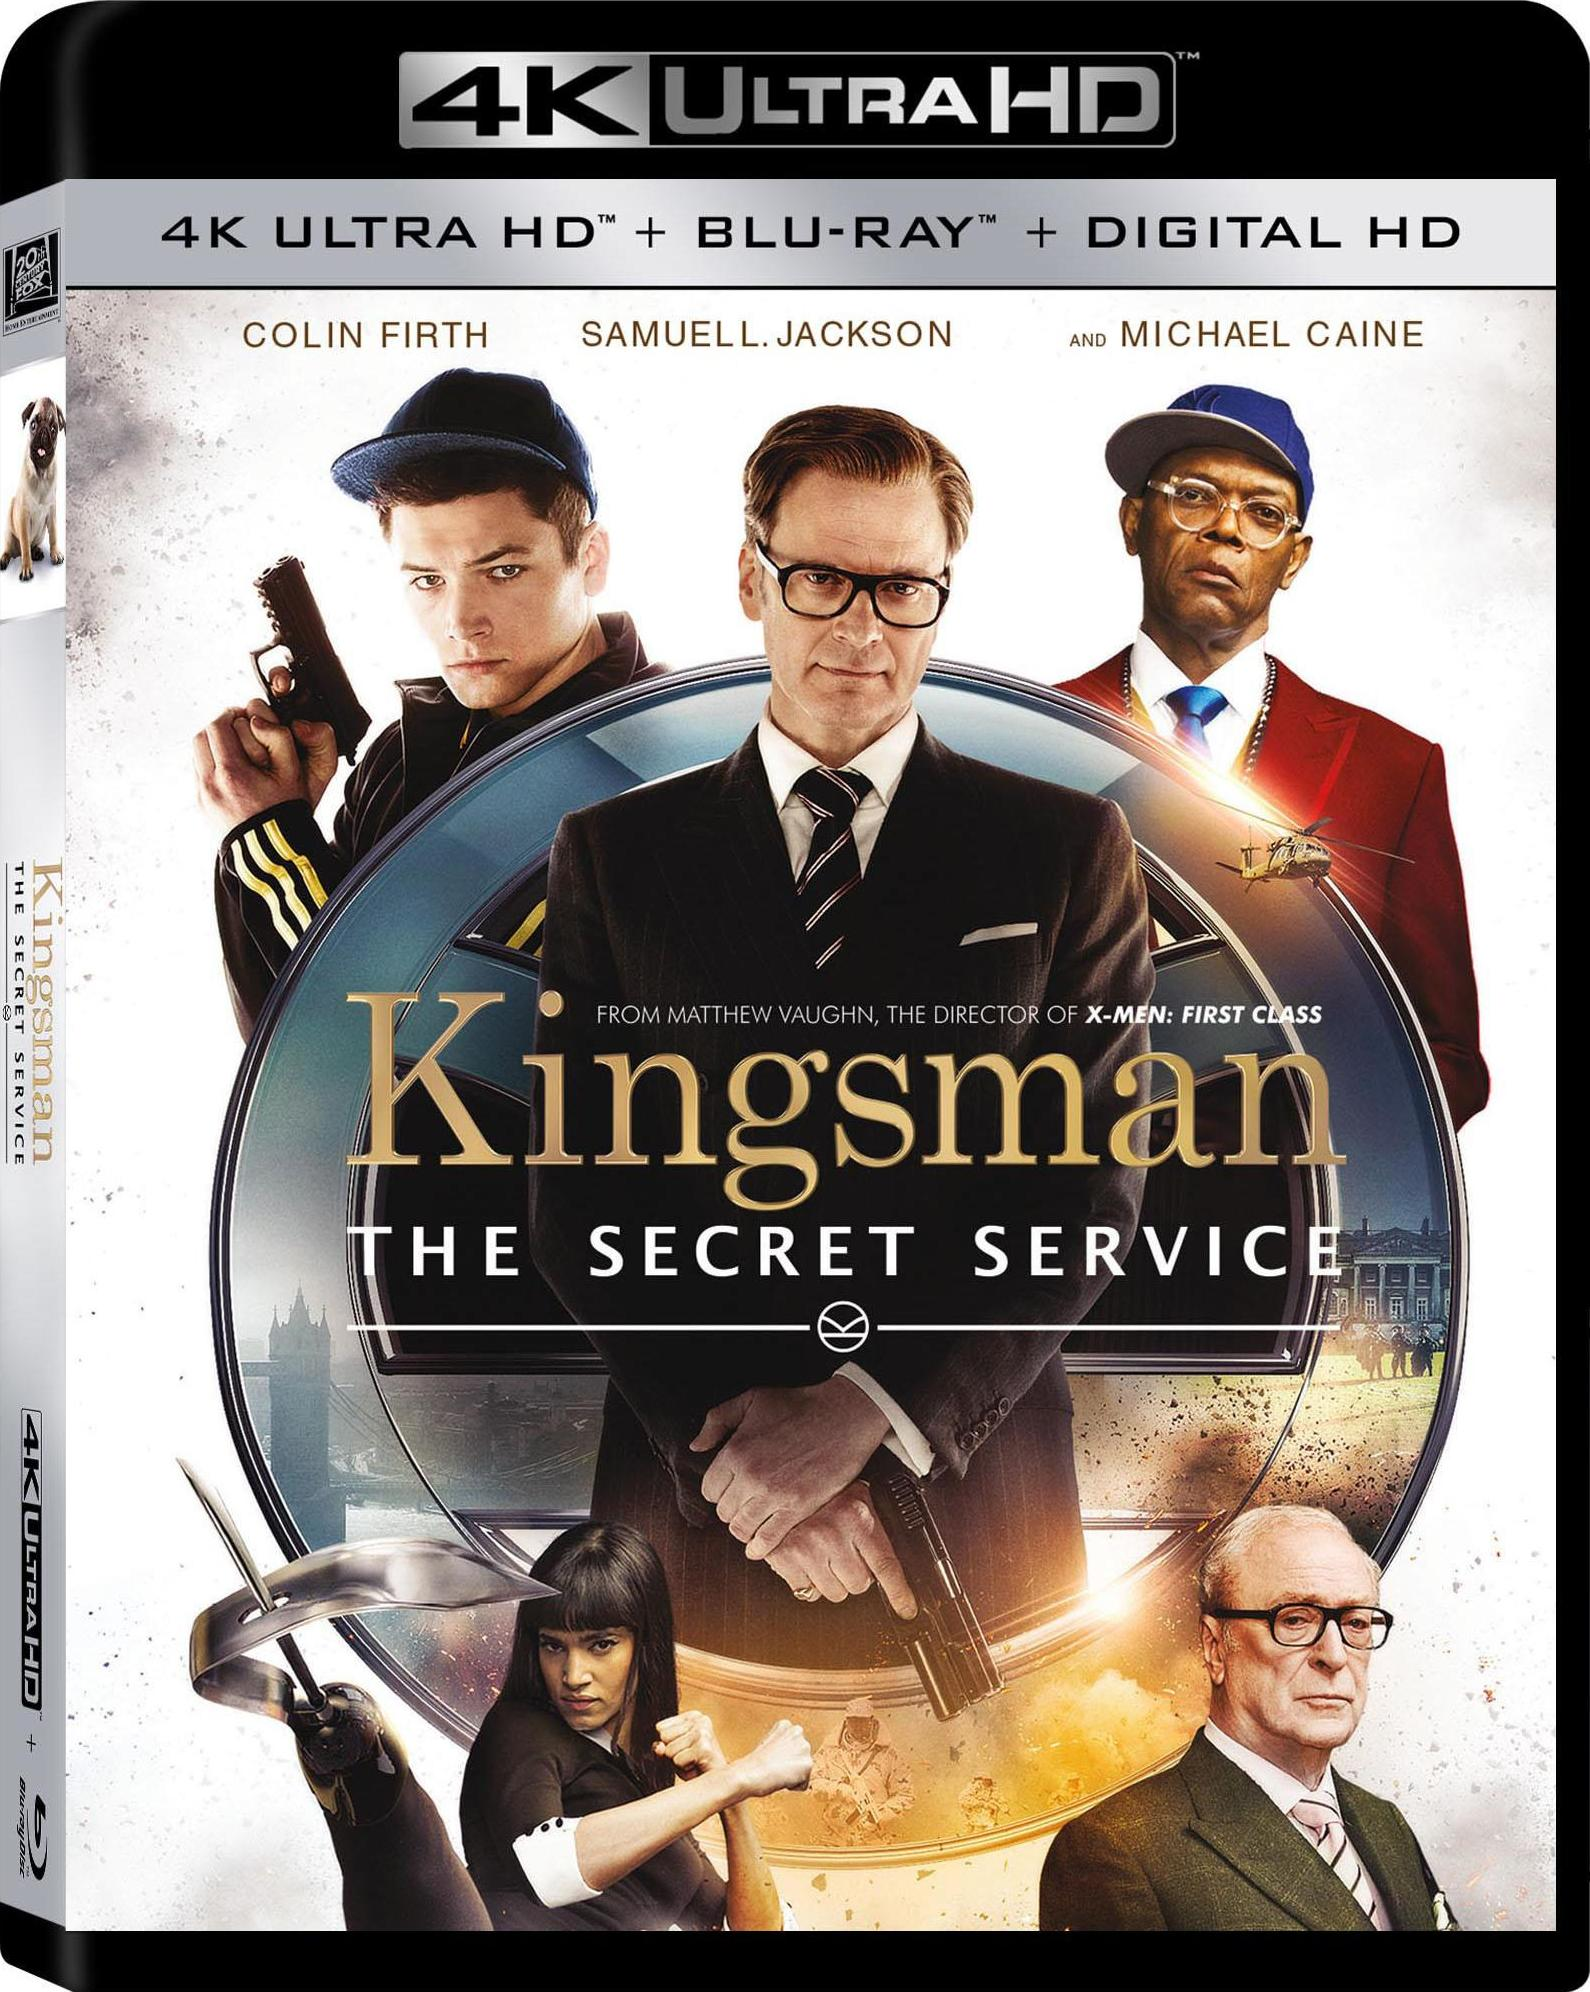 Kingsman: The Secret Service (2015) 4K Ultra HD Blu-ray